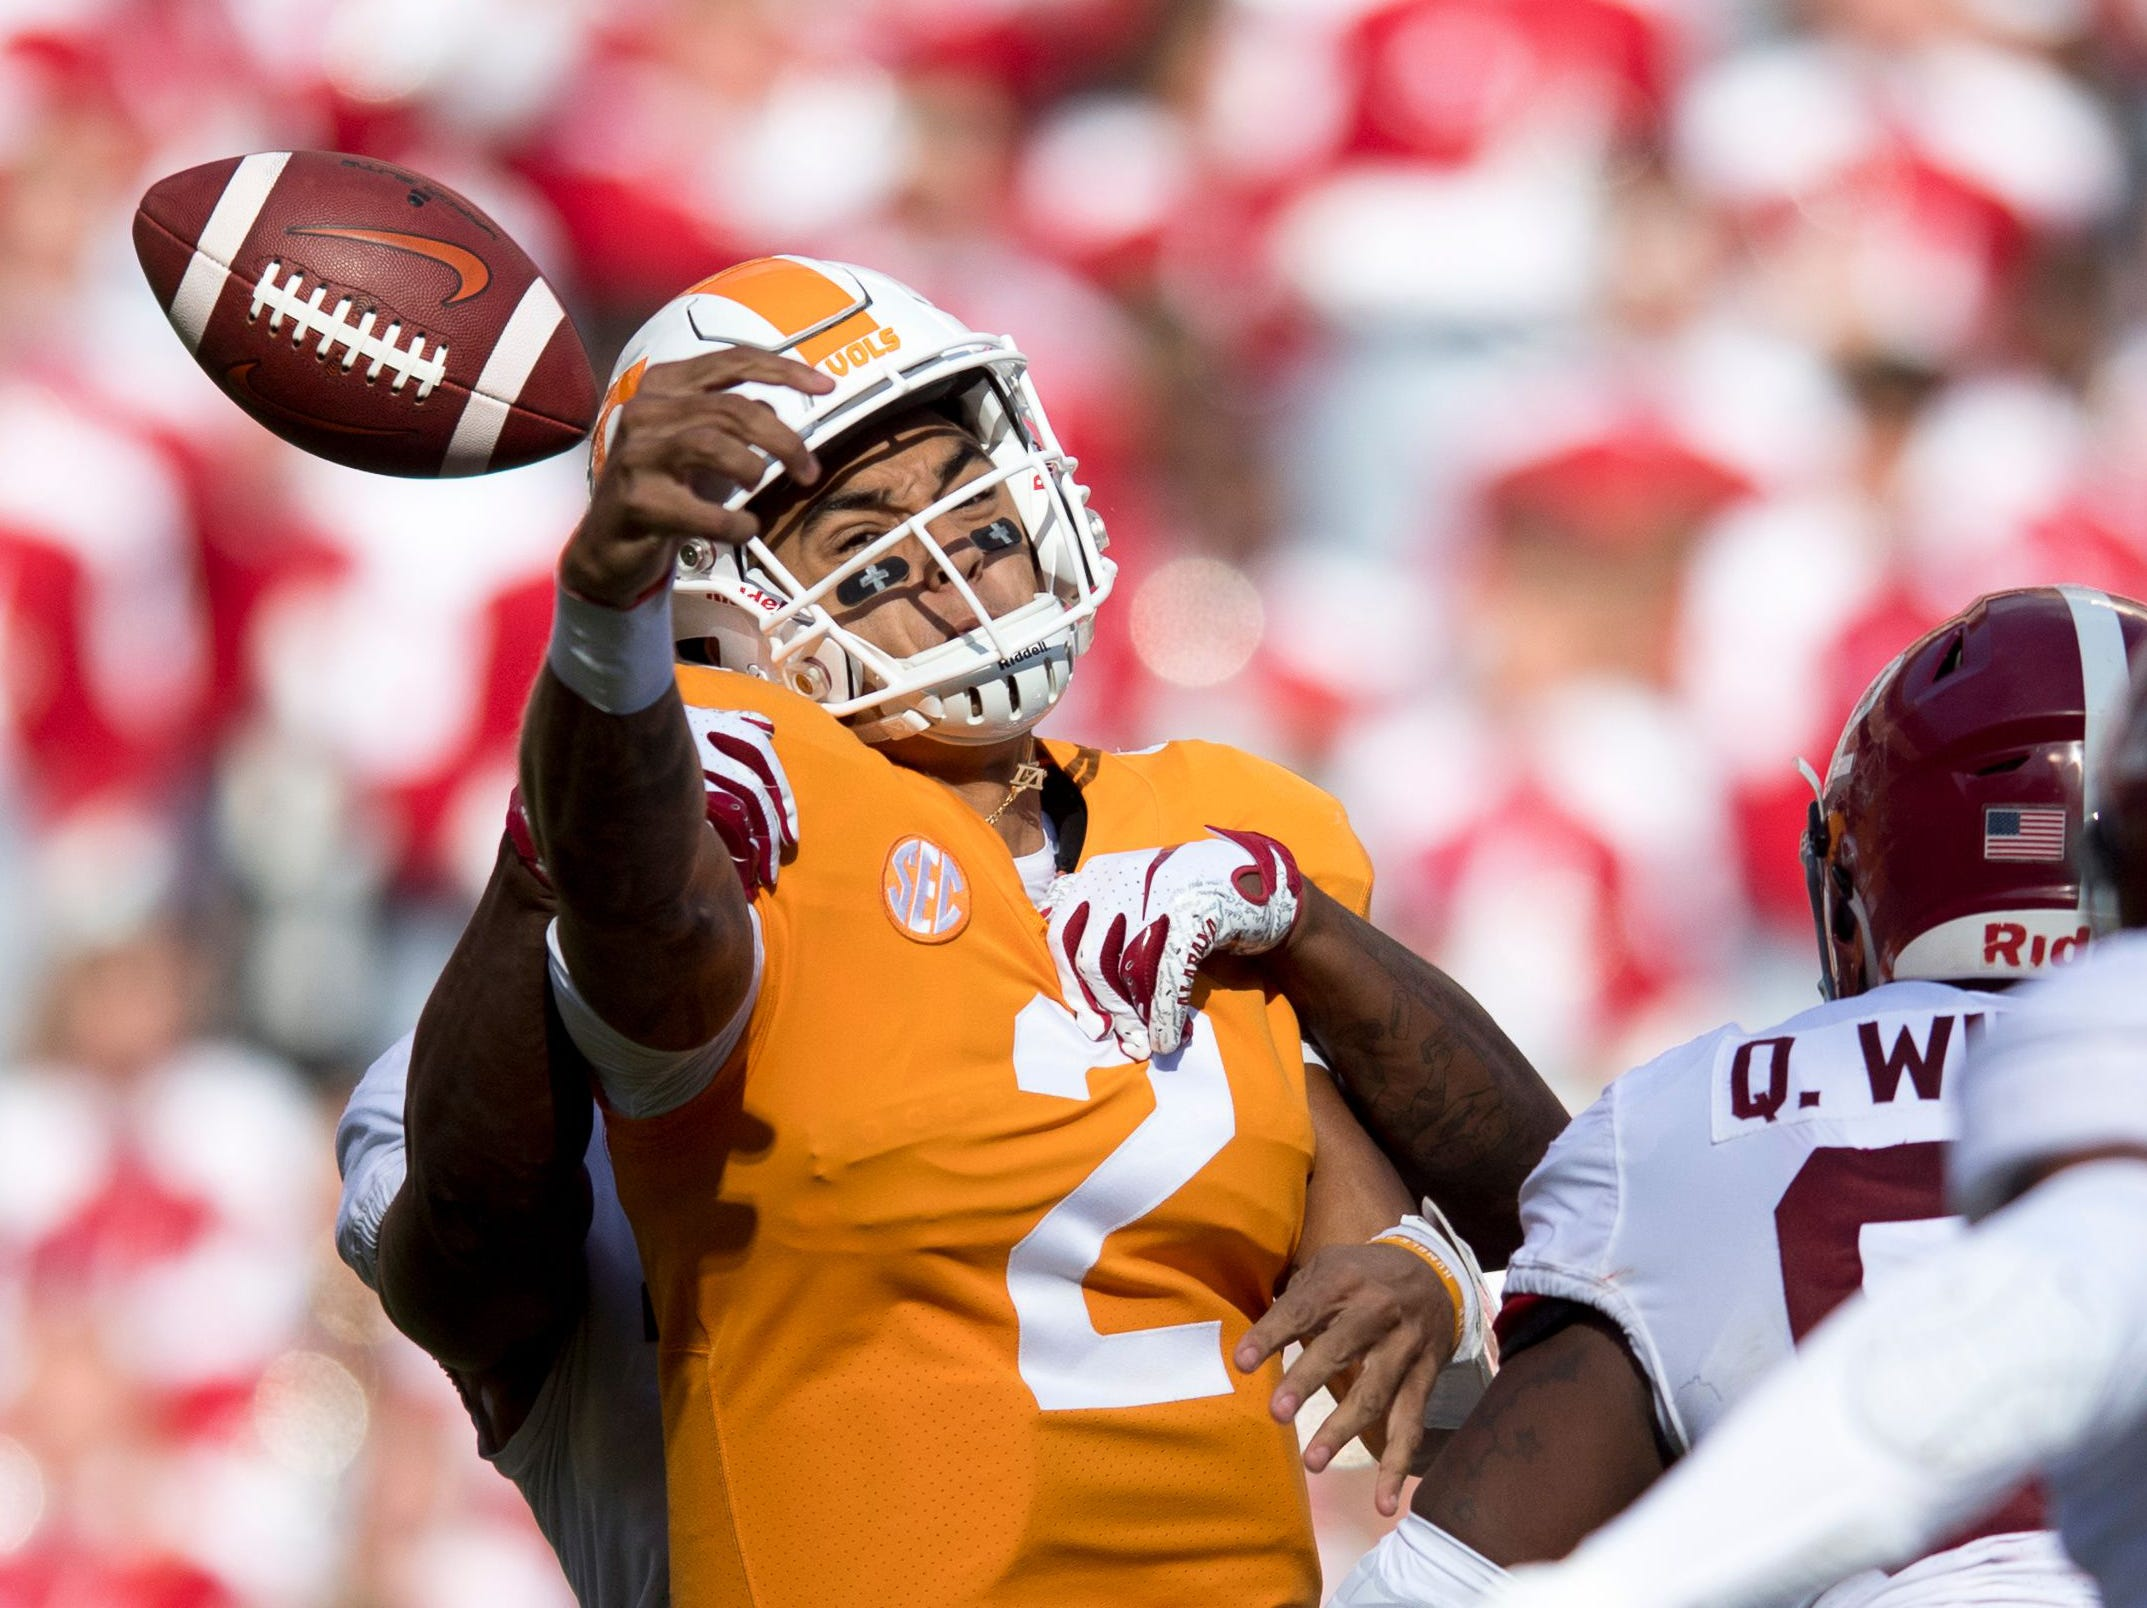 Tennessee quarterback Jarrett Guarantano (2) is sacked by Alabama defensive back Xavier McKinney (15) during a game between Tennessee and Alabama at Neyland Stadium in Knoxville, Tennessee on Saturday, October 20, 2018.